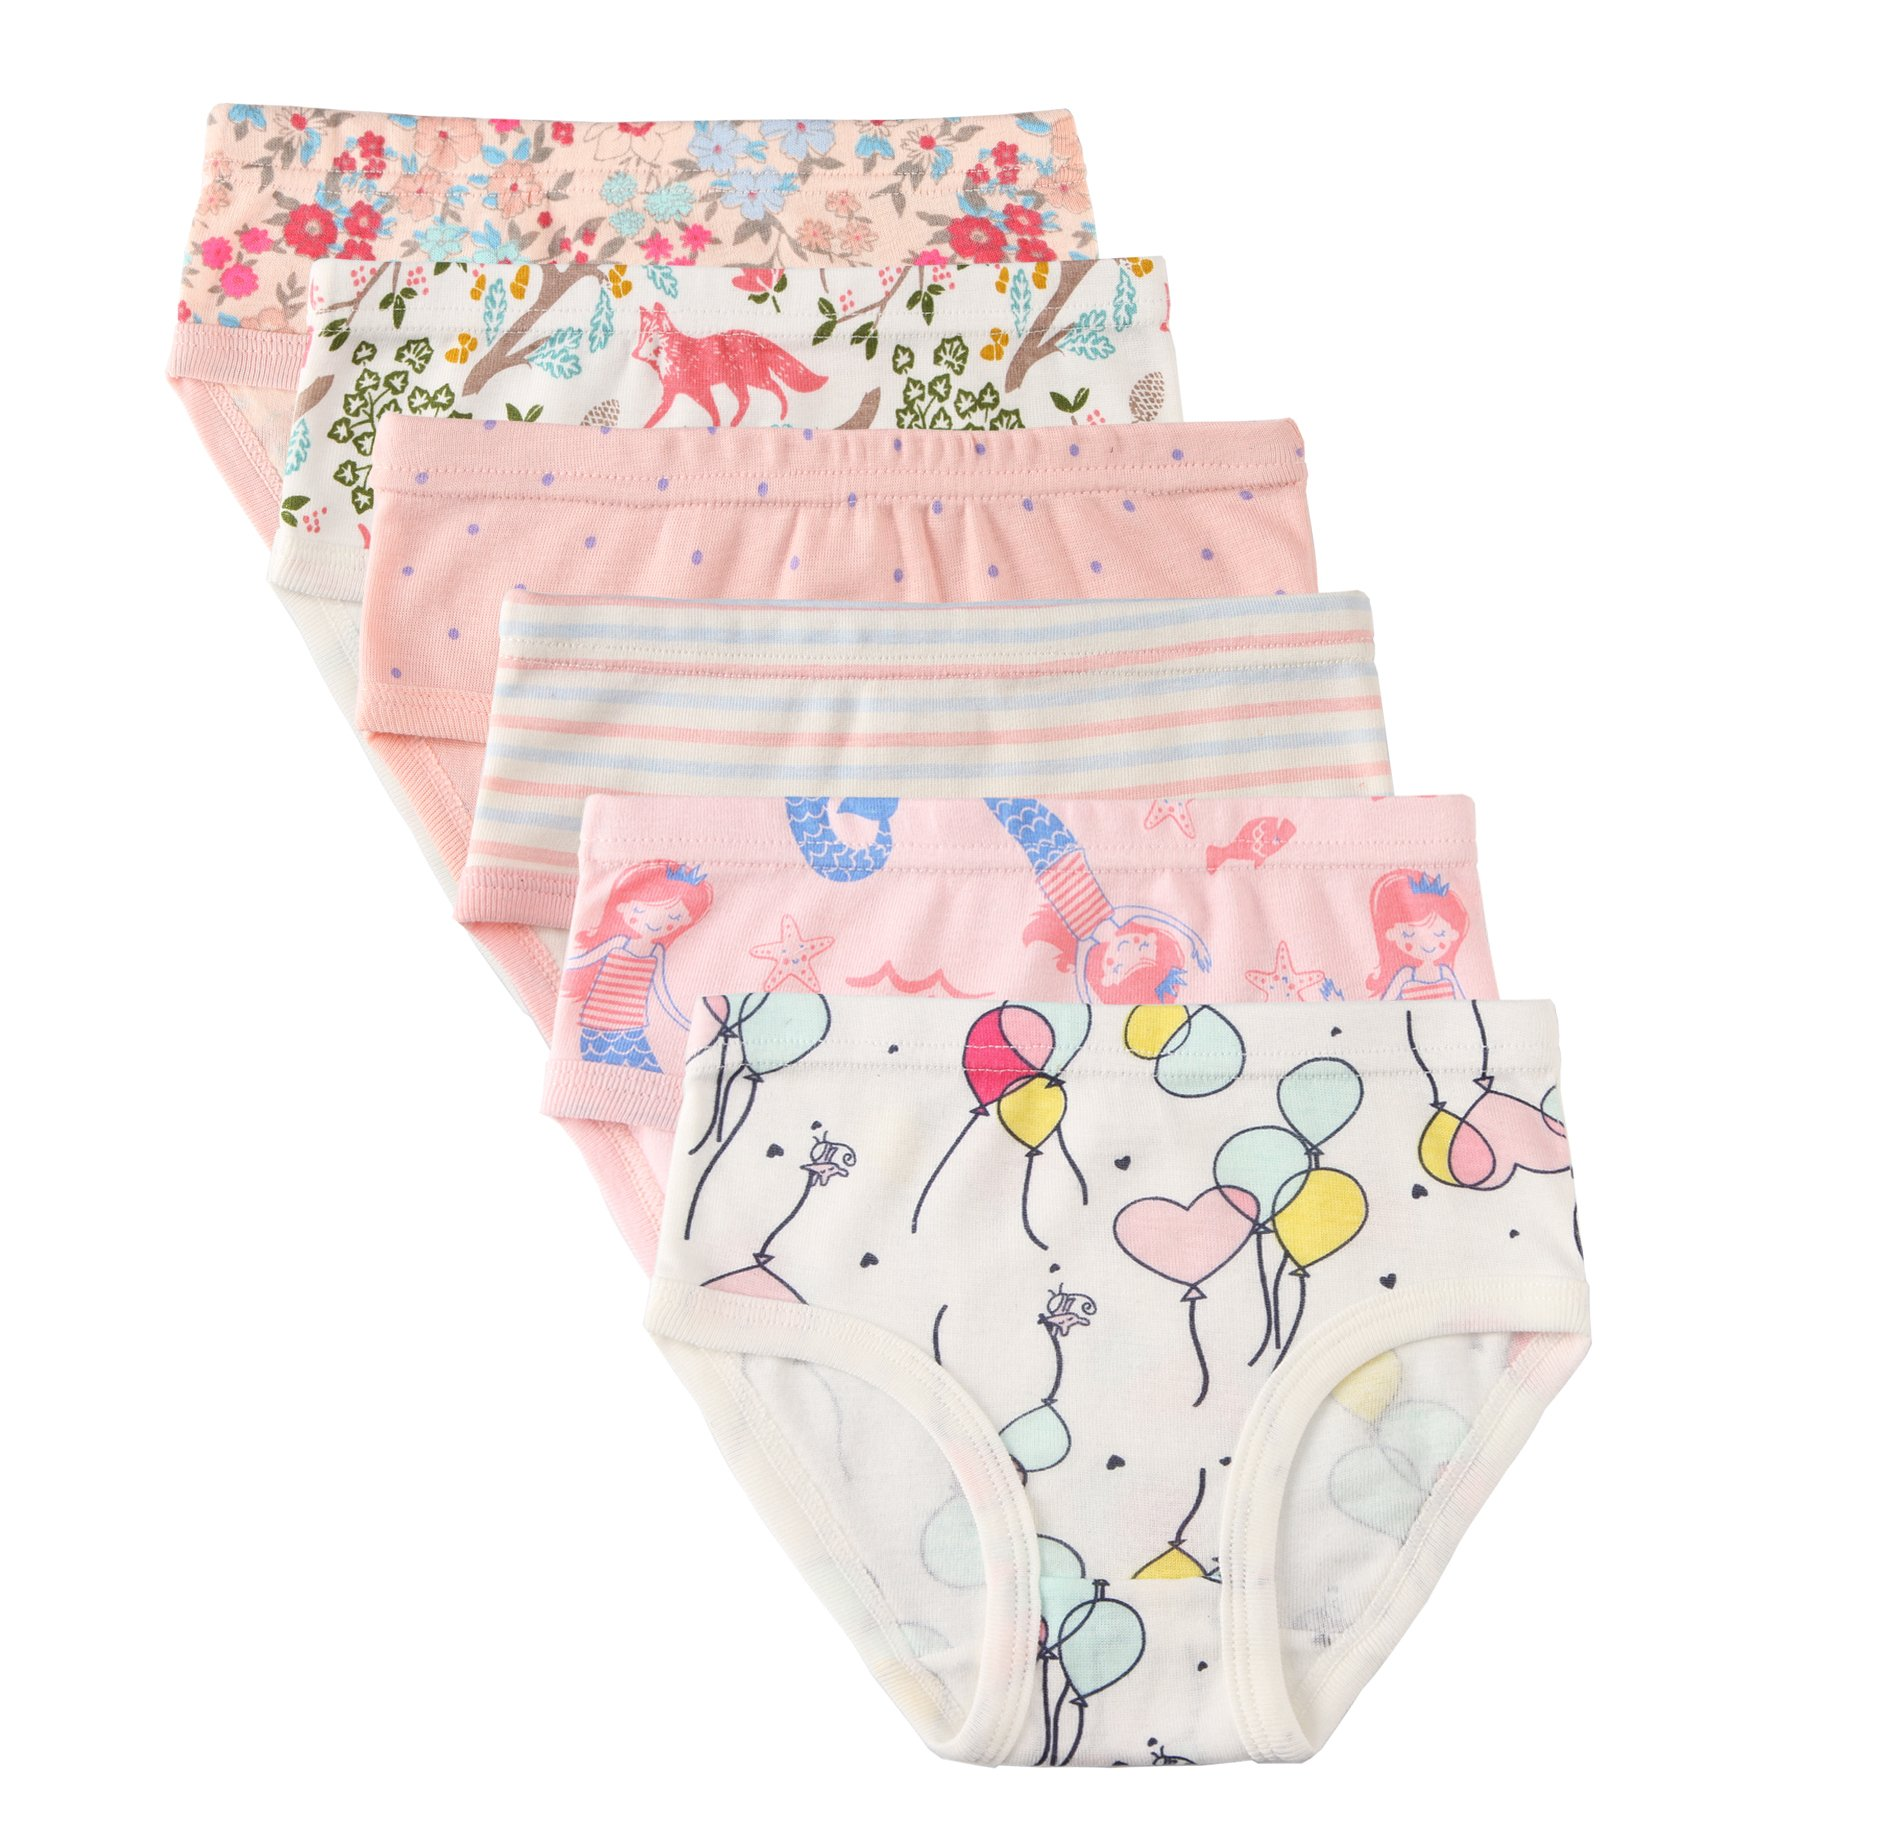 Little Girls' Soft Cotton 6-Pack Underwear Bring Cool, Breathable Comfort Experience in Summer. (Assorted B, 3-4Years)